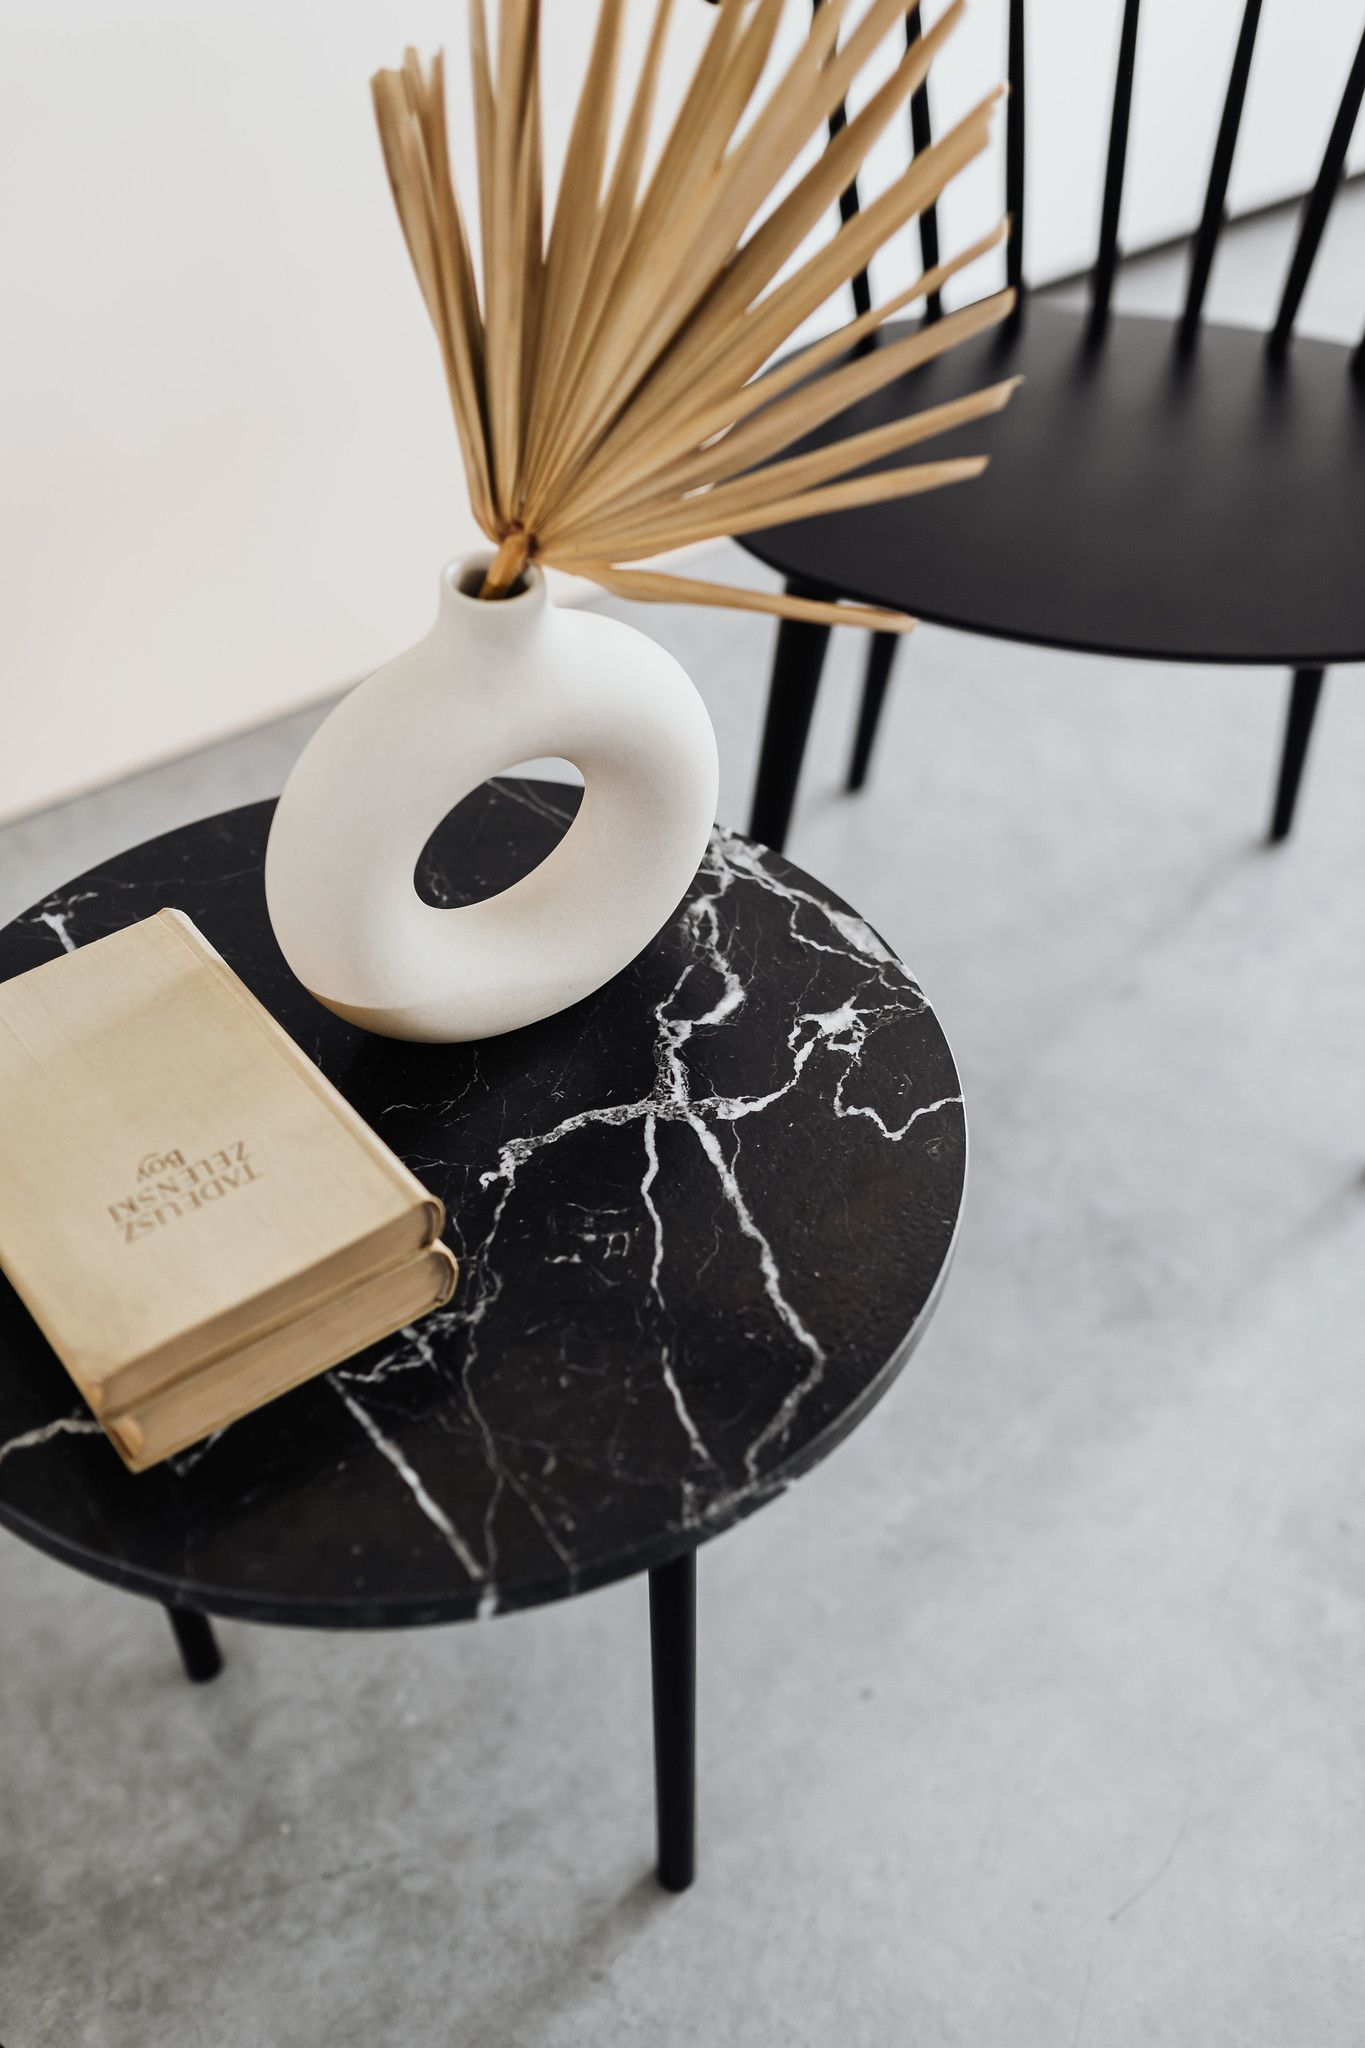 GRUFF coffee tables are the flagship furniture of the TEXTURE collection. Delicate brushed marble create a unique texture on the table tops that works on the senses. They surprise with their texture. #uncommondesign #marblecoffeetable #marbledesign #livingroomdecor #livingroomfurniture  Fot. Karolina Grabowska // Kaboompics